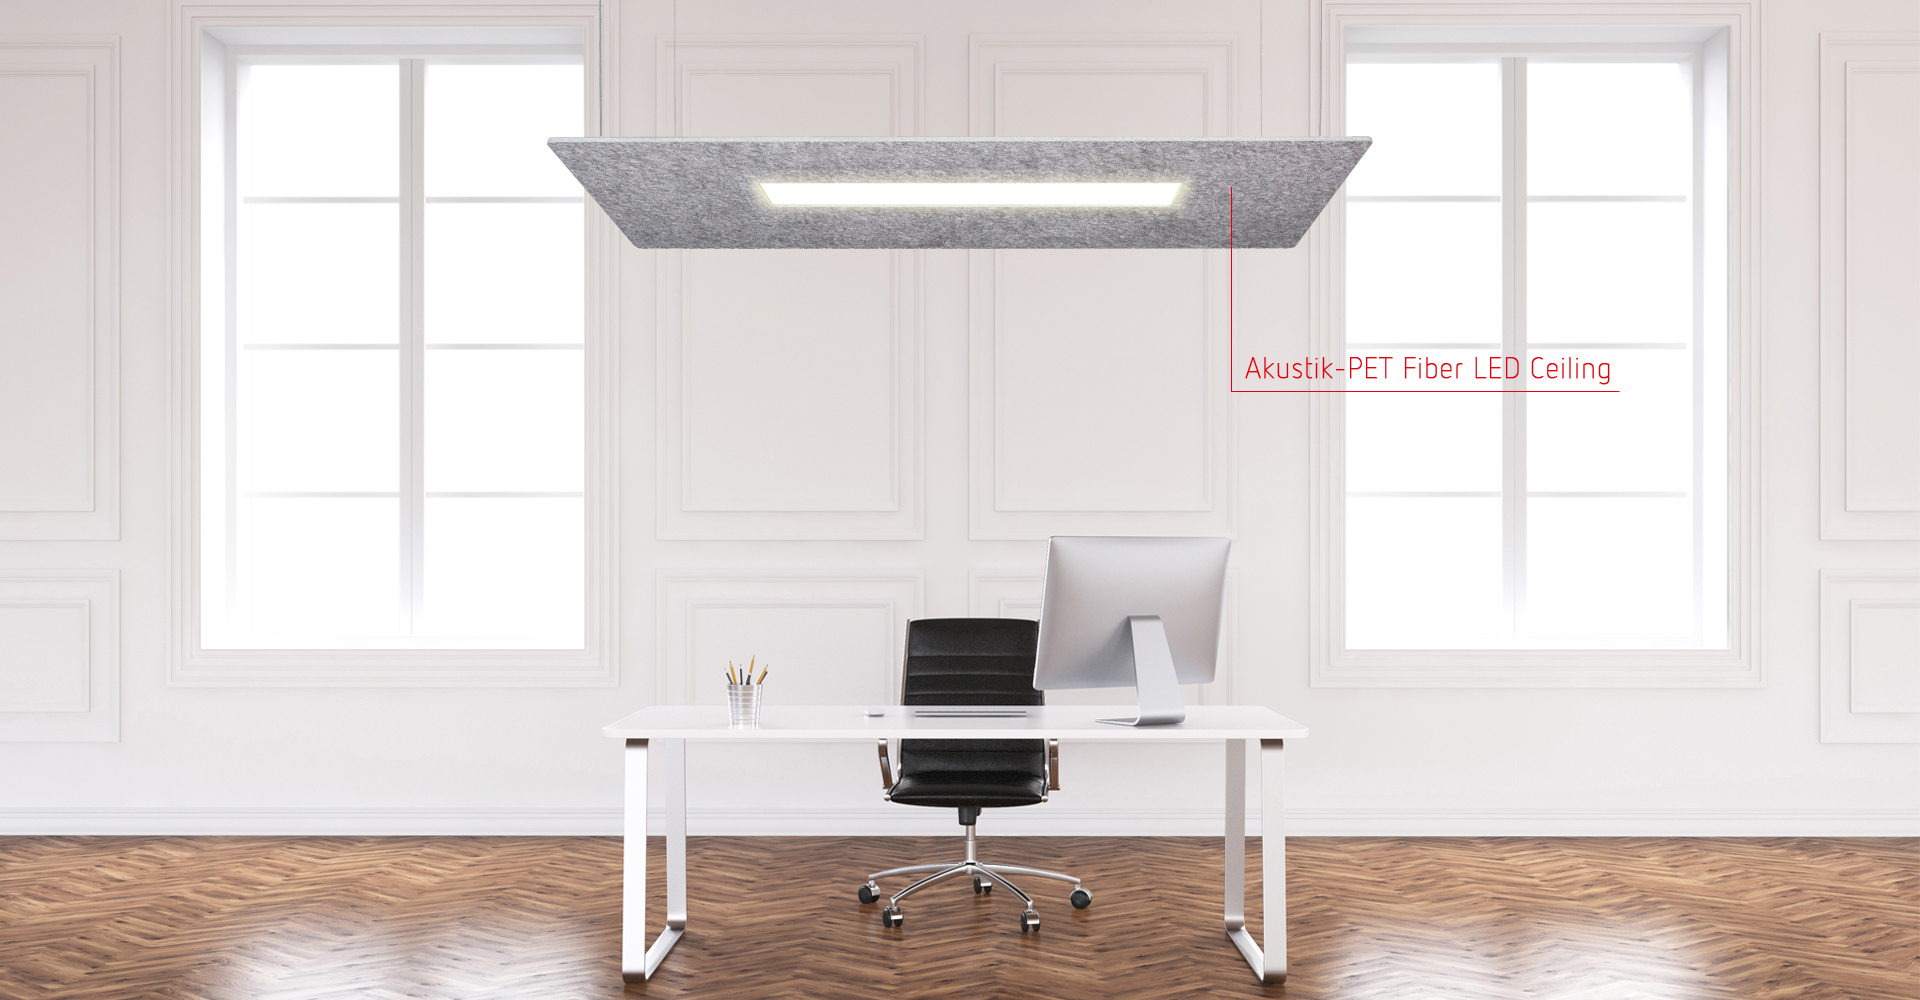 Akustik-PET Fiber LED Ceiling